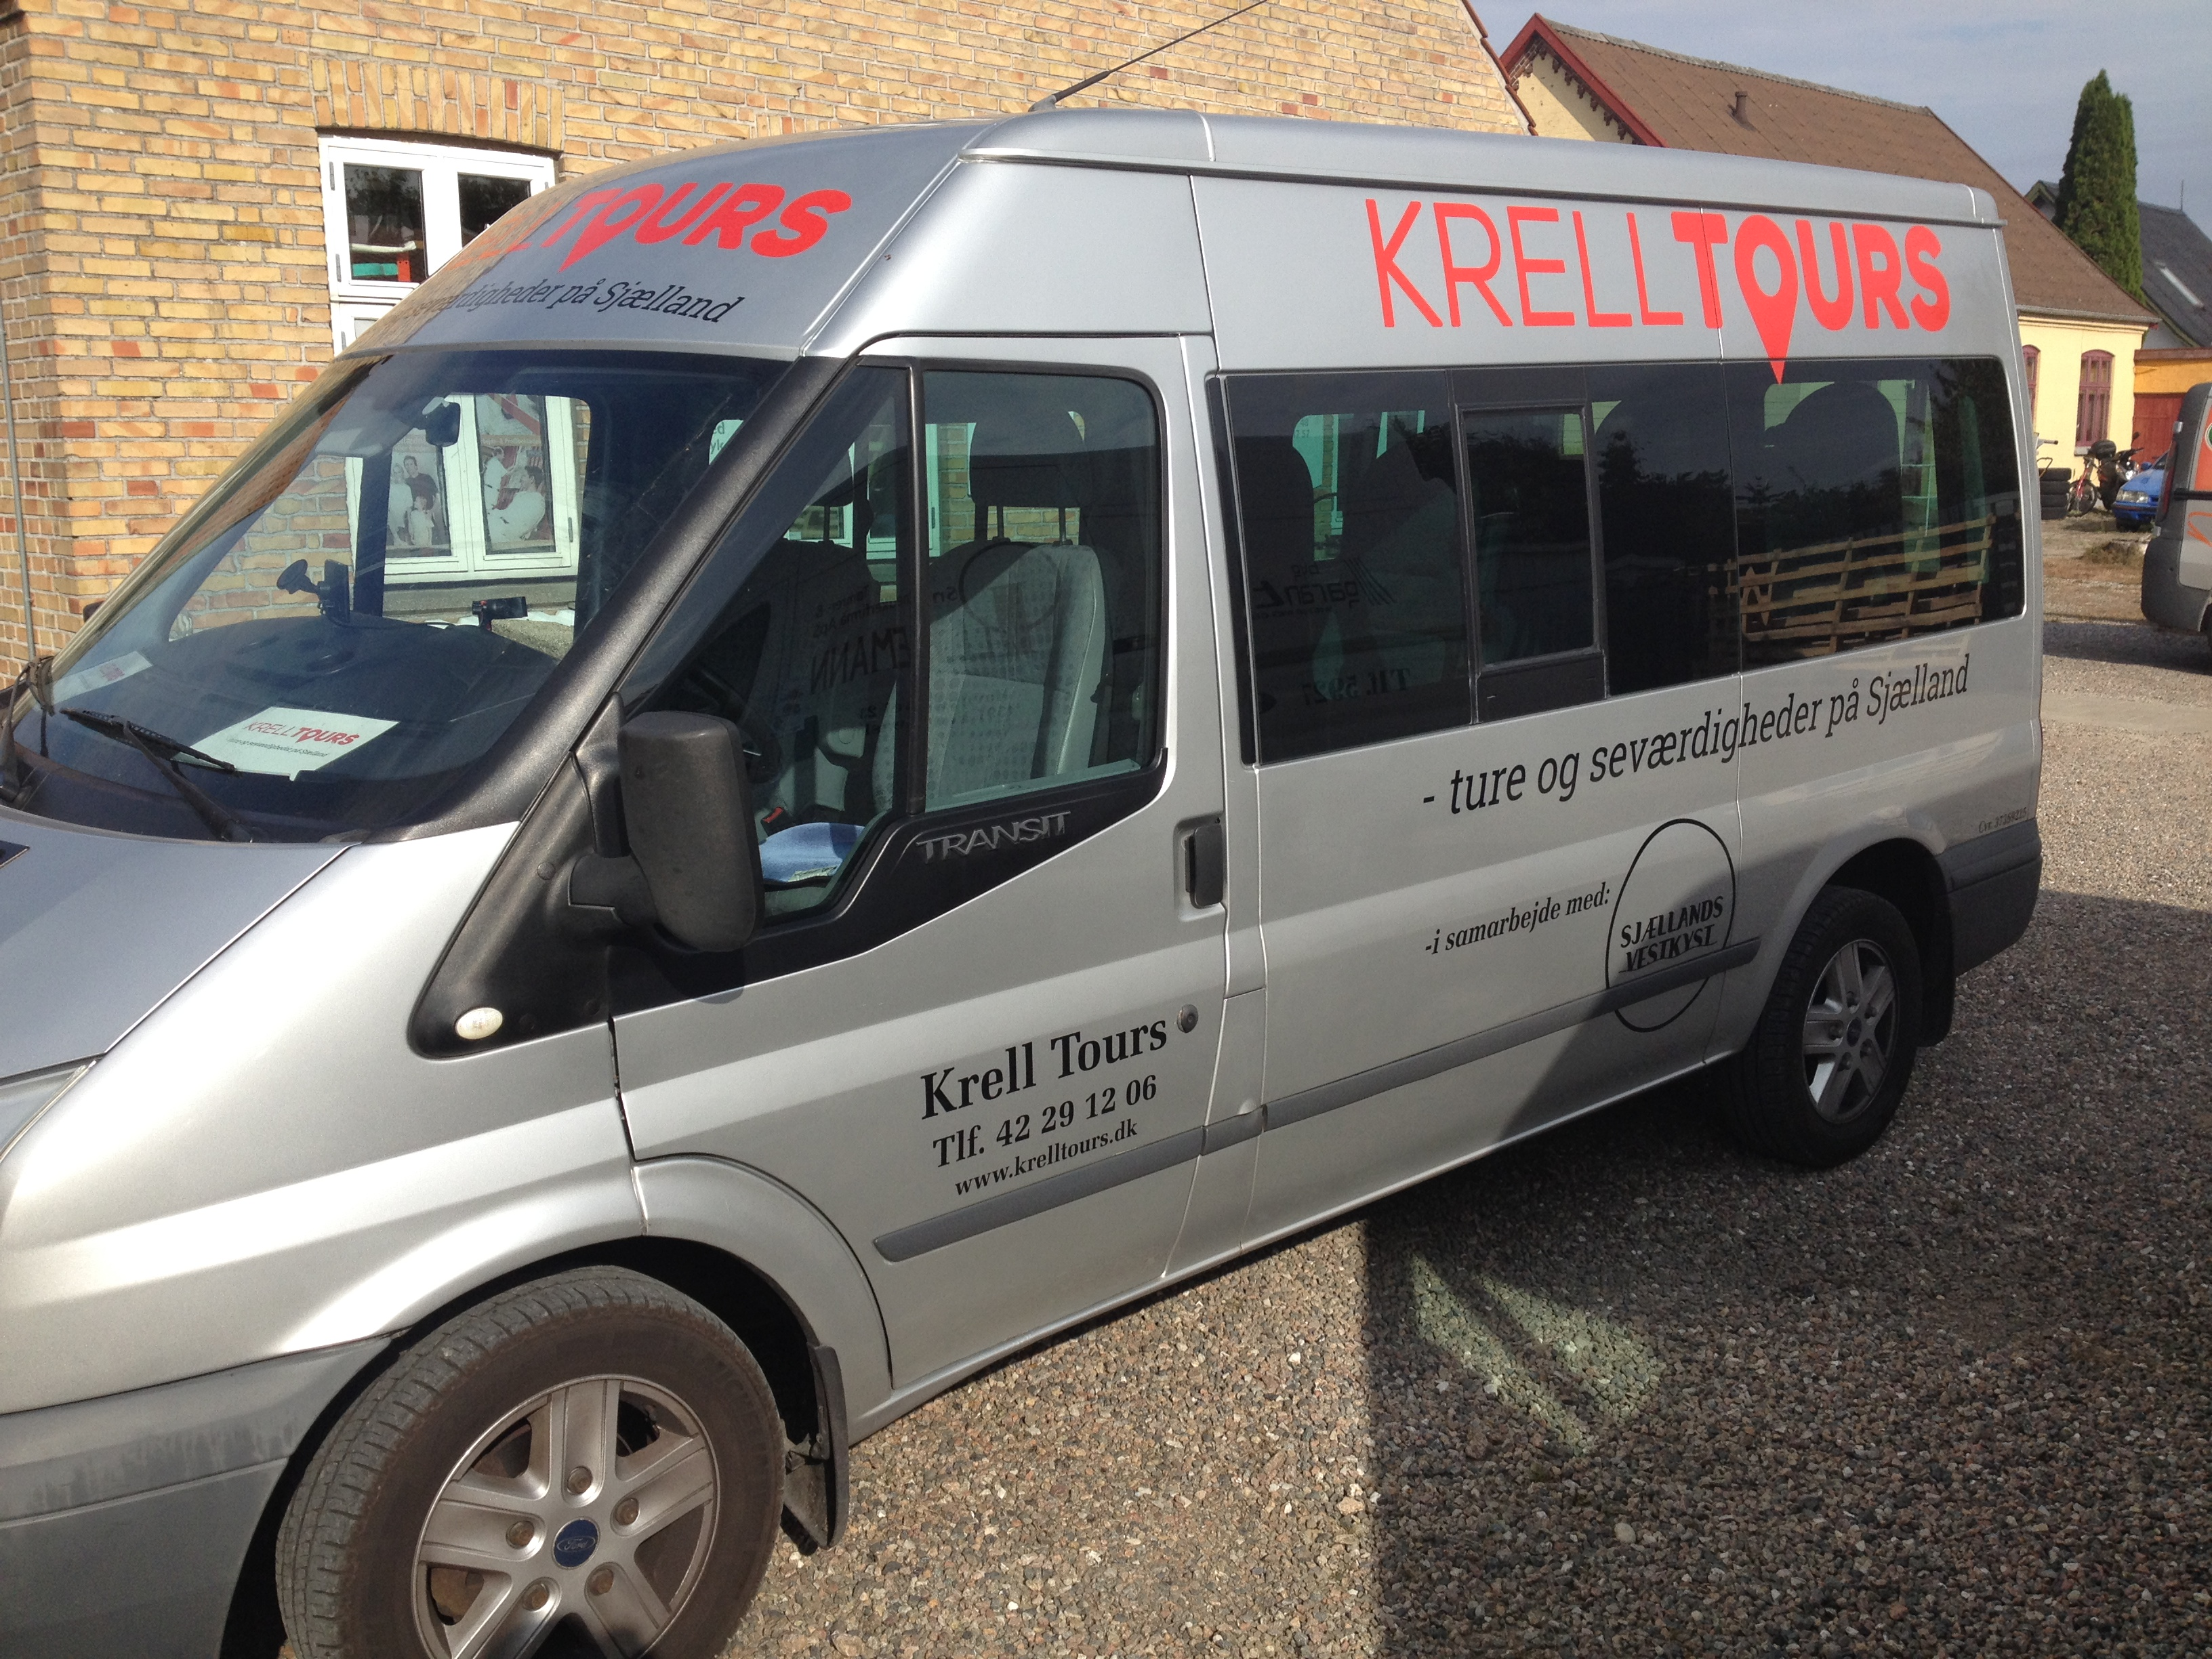 Krell Tours bildekoration